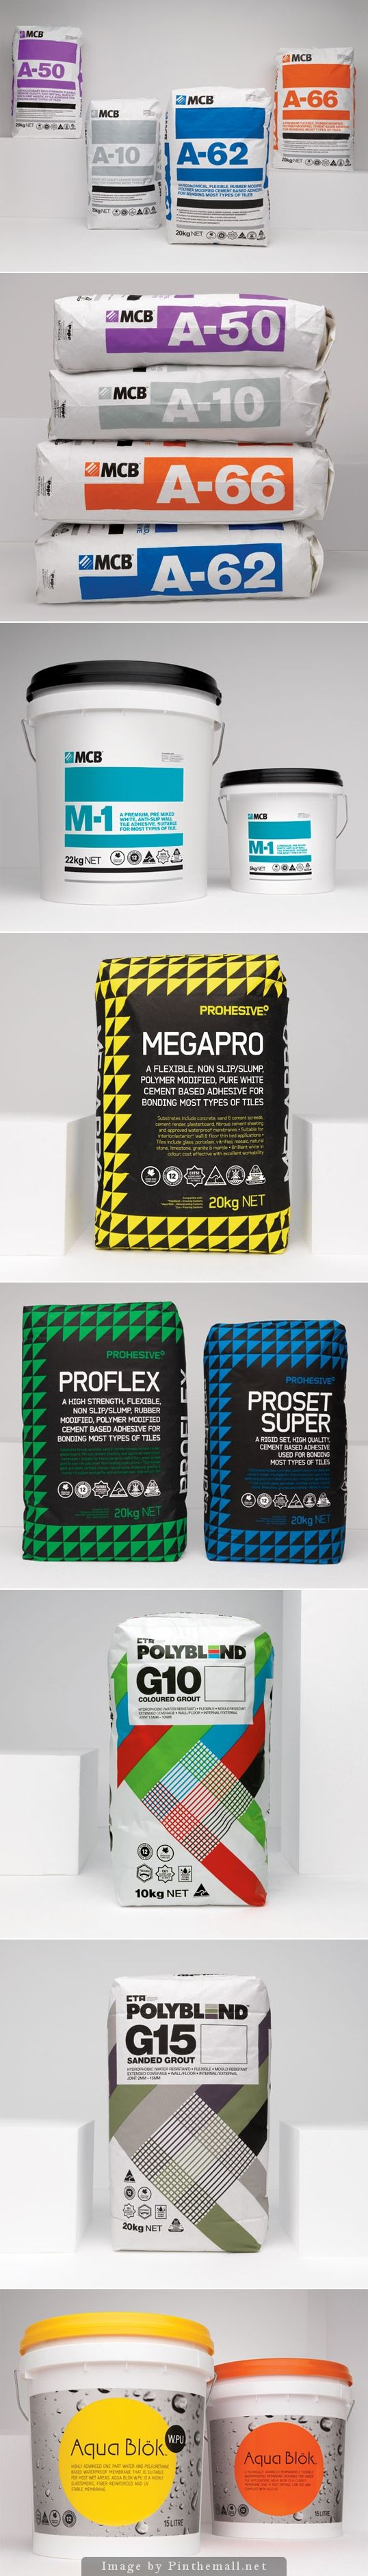 I was looking at cement packaging and thought these were fab PD